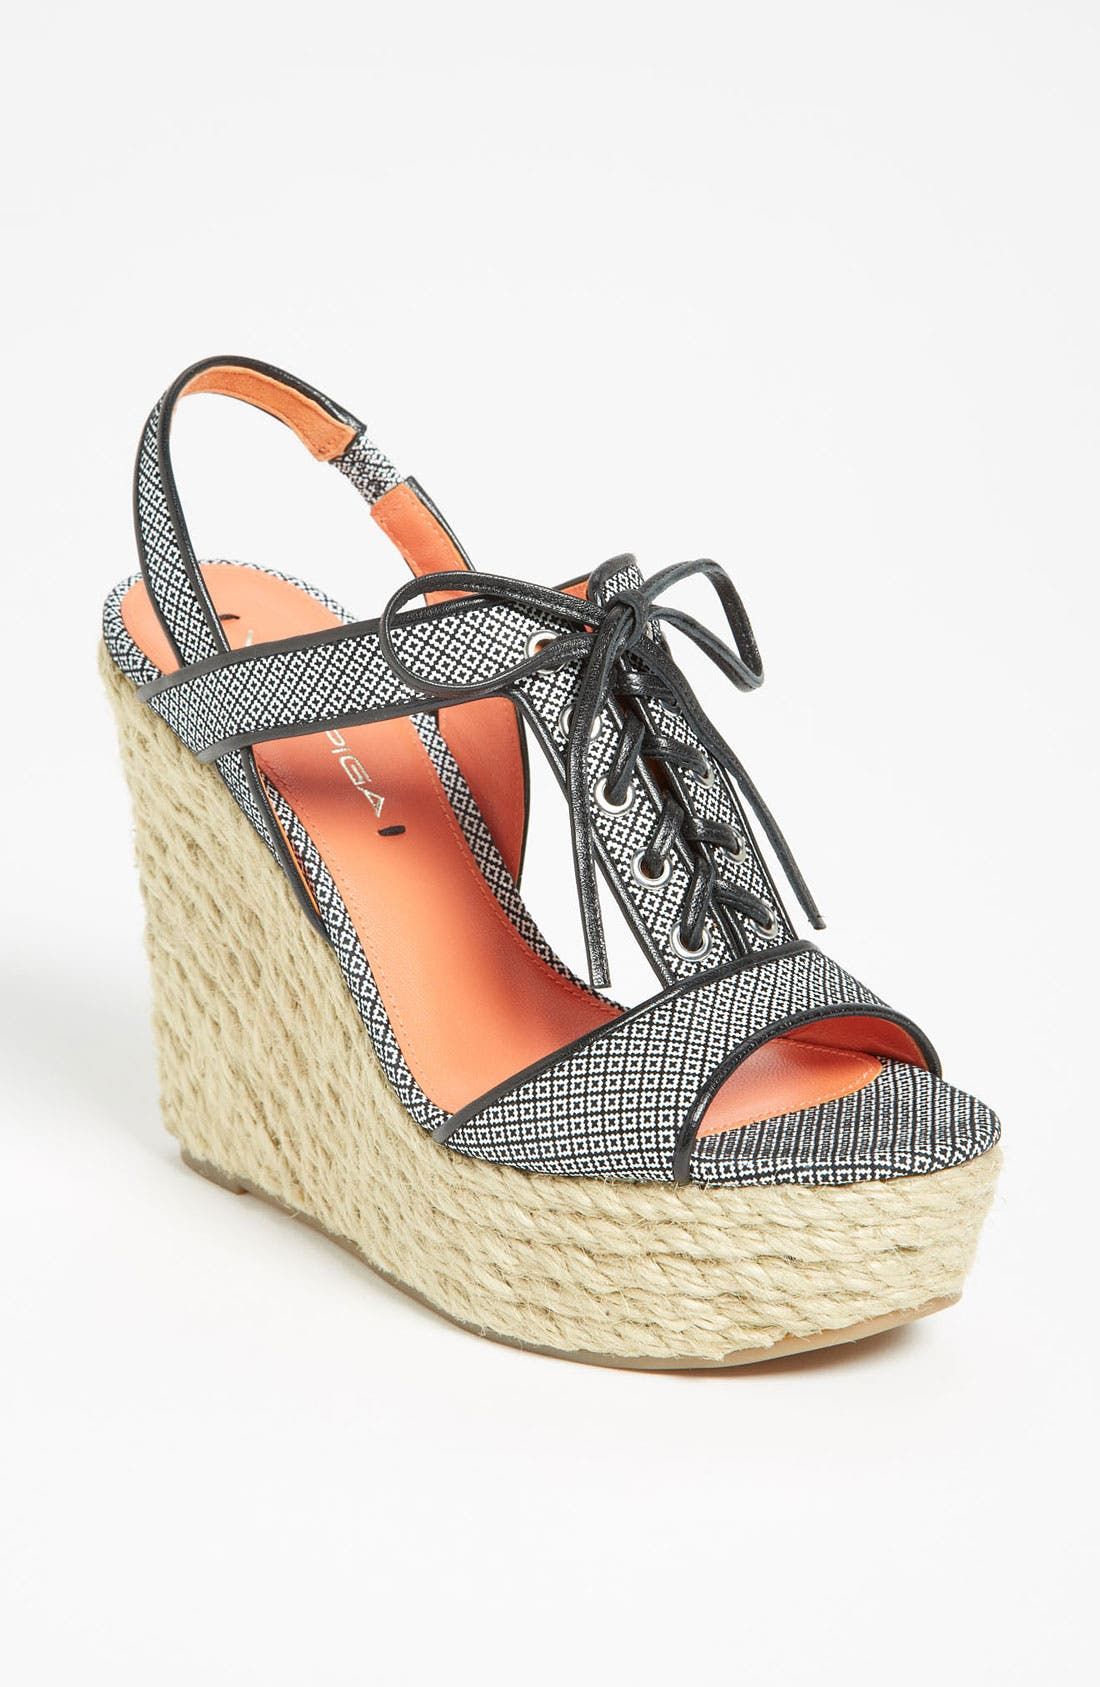 Main Image - Via Spiga 'Kassiana' Wedge Sandal